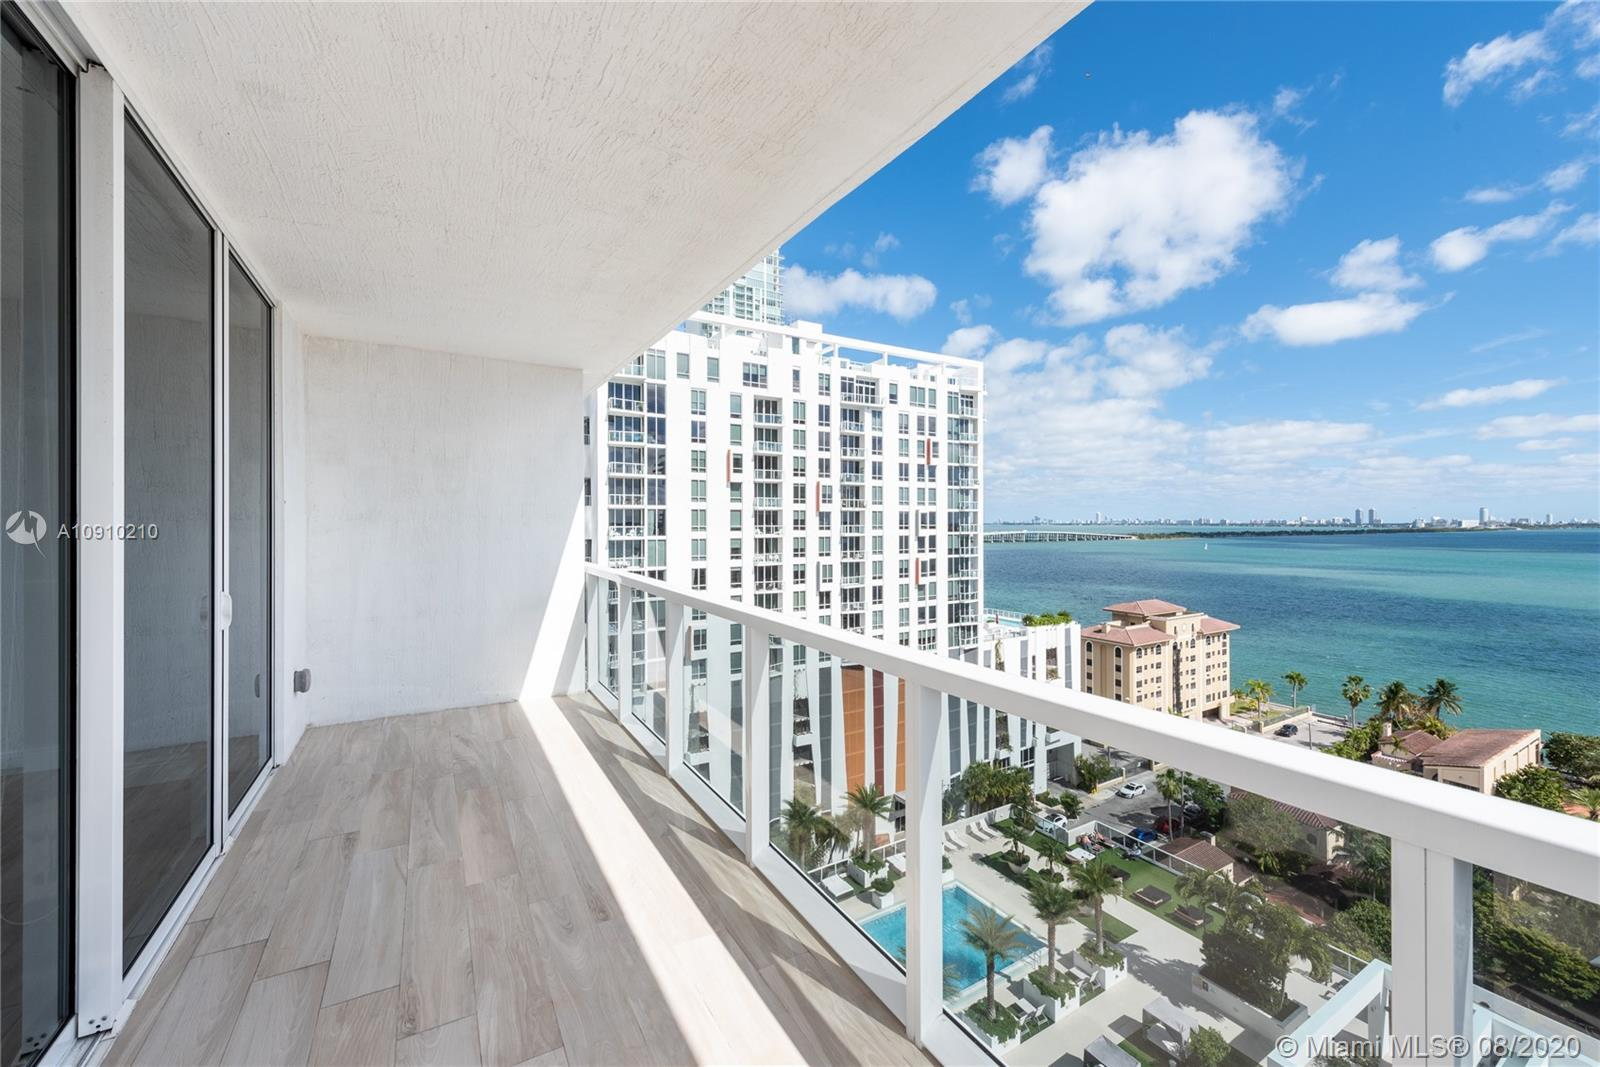 Amazing South East Corner 3 Bedroom/2.5 Bath unit with stunning bay and city views. This Unit includ